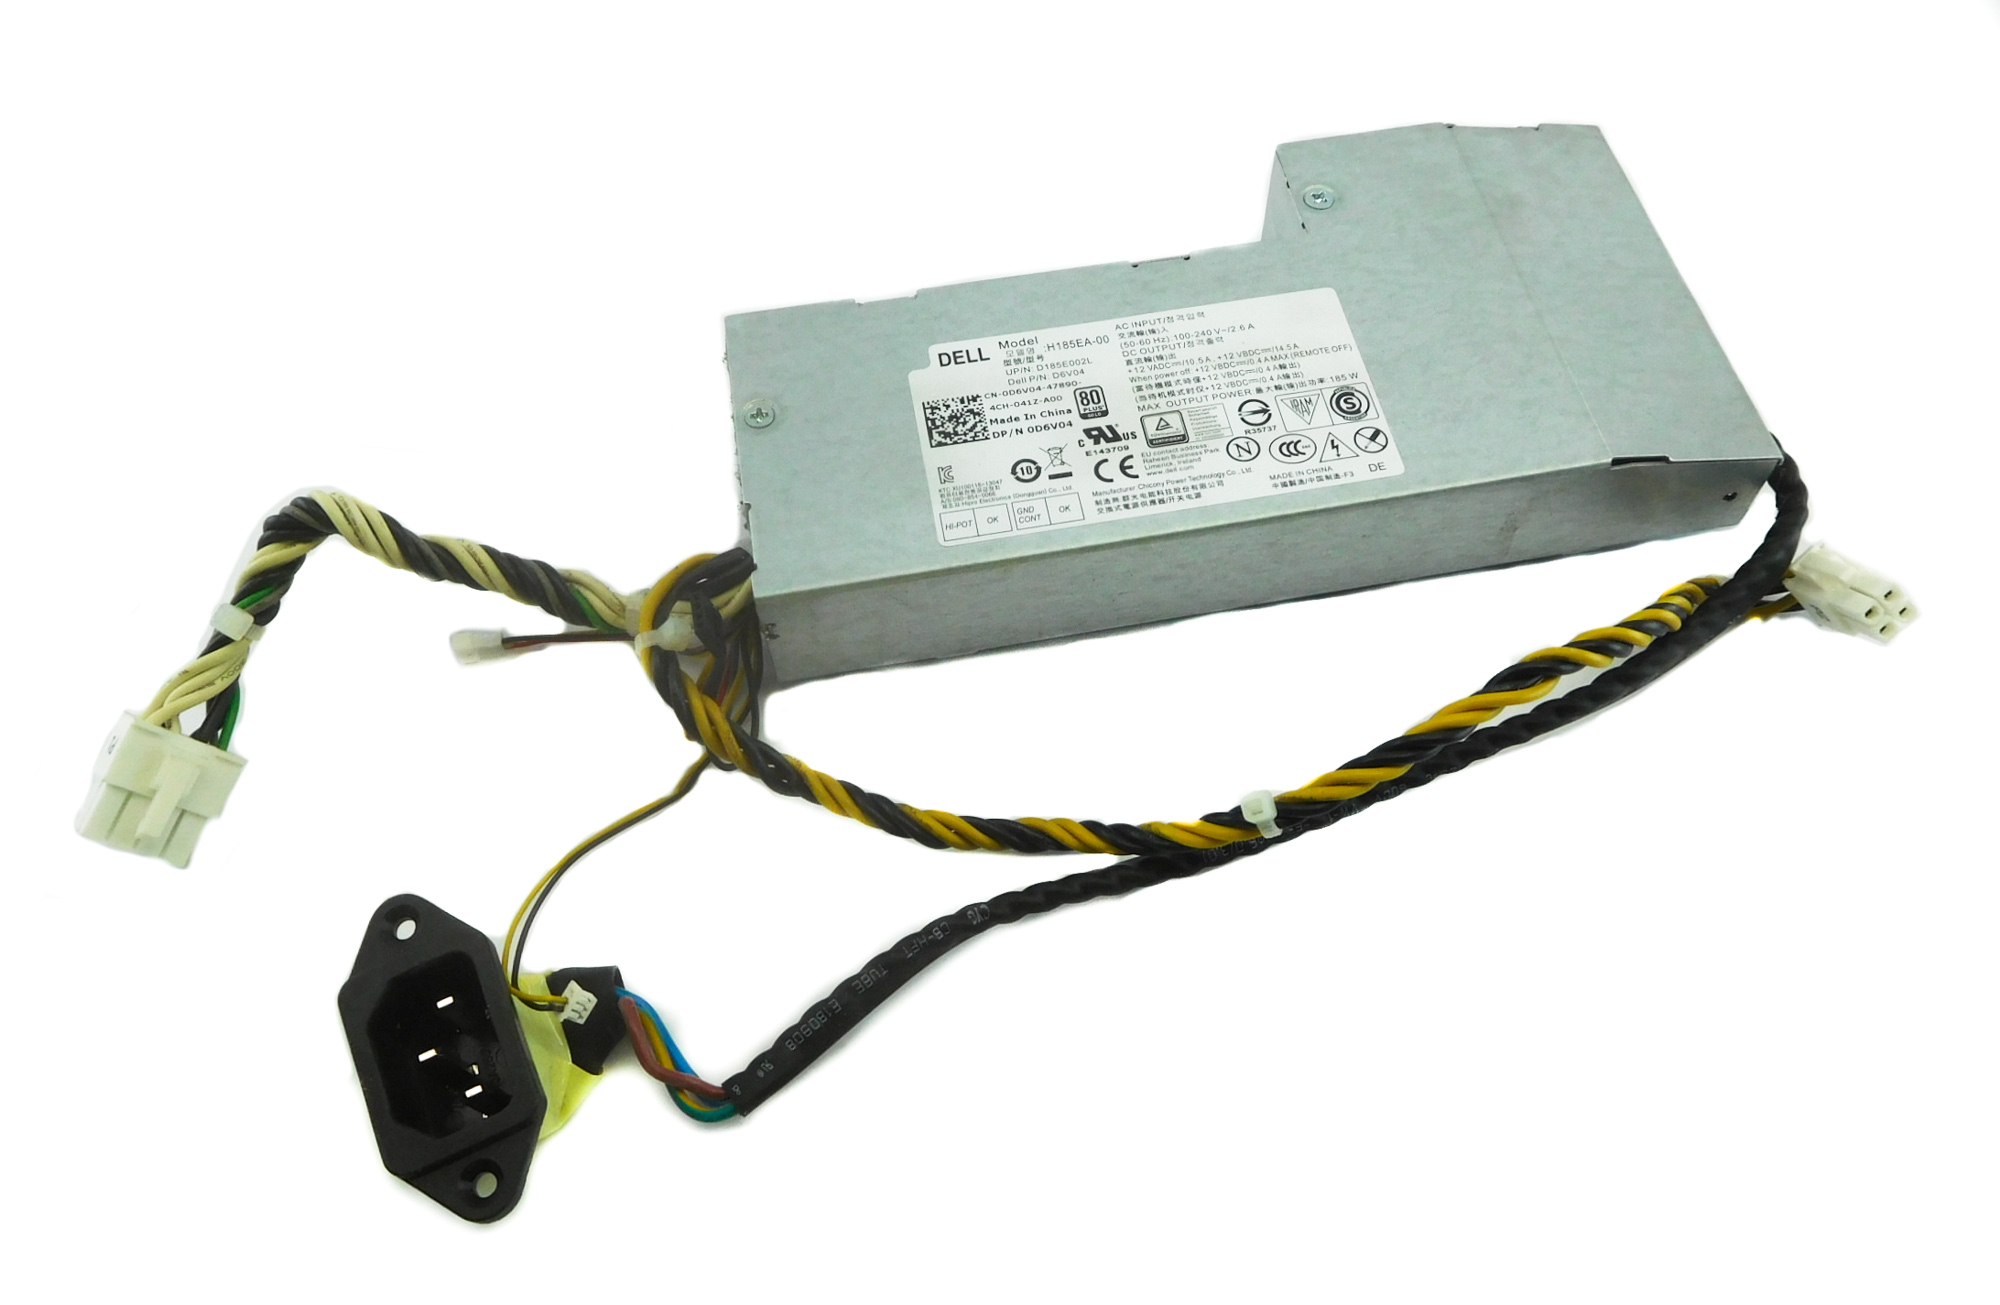 Dell D6V04 OptiPlex 9030 AiO PC 185W Power Supply Unit H185EA